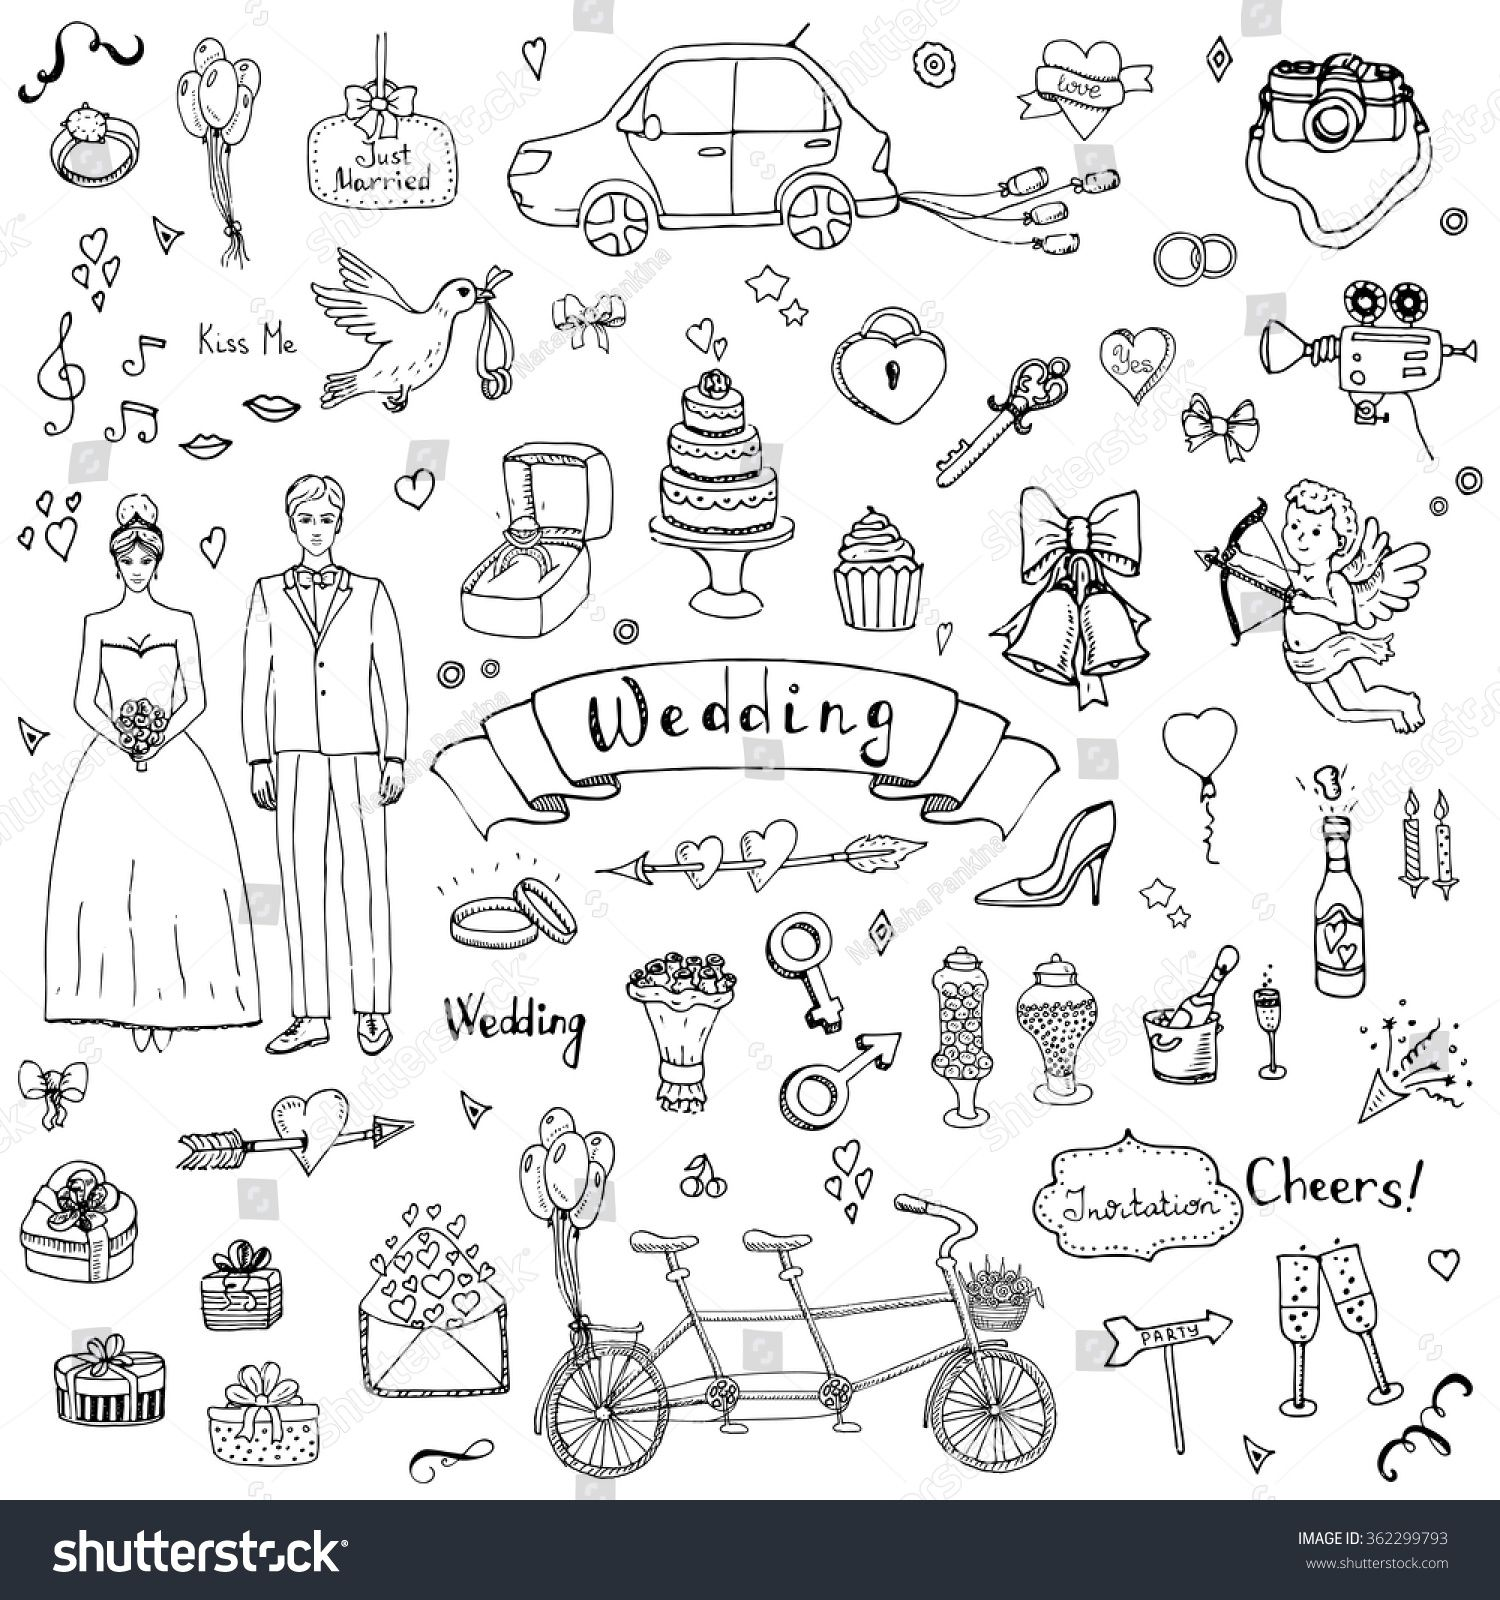 Hand Drawn Doodle Wedding Collection Vector Illustration Sketchy Marriage Icons Big Set Of For Day Love And Romantic Events Bride Groom Heart: Drawn Chalkboard Wedding Ring At Reisefeber.org